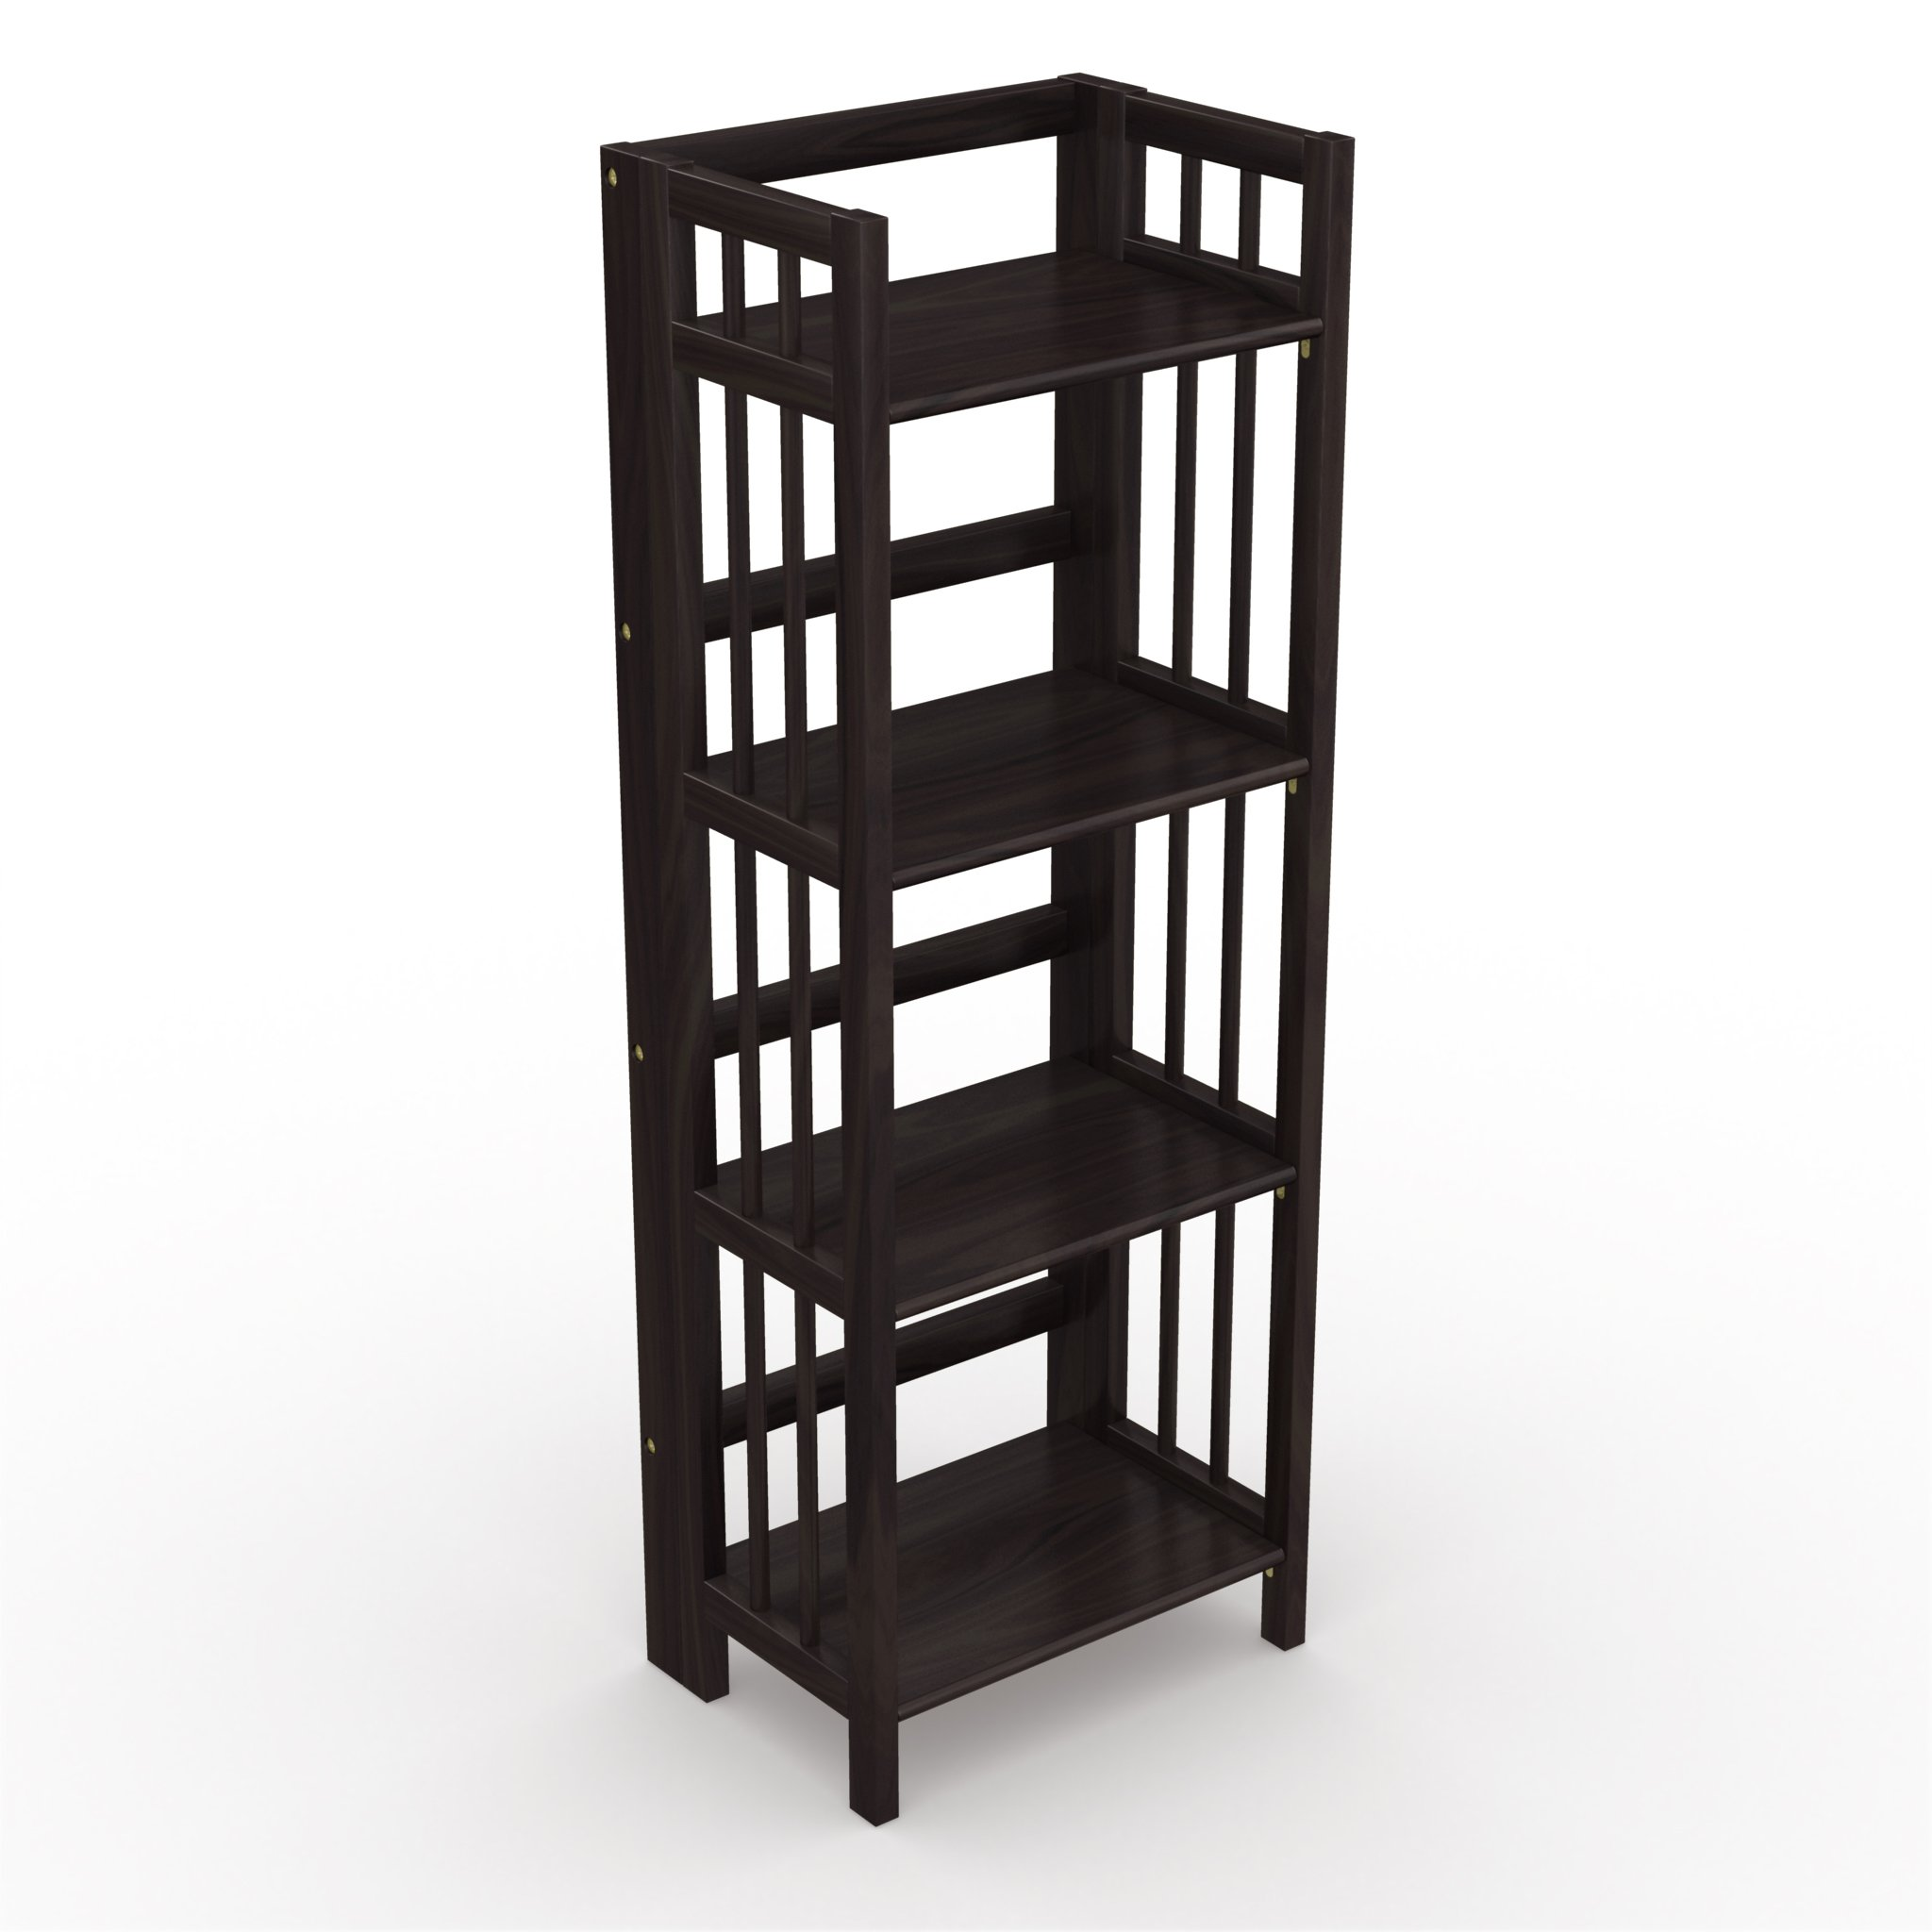 Stony-Edge No Assembly Folding Bookcase, 4 Shelves, Media Cabinet Storage Unit, for Home & Office, Quality Furniture. Espresso Color. 16'' Wide.